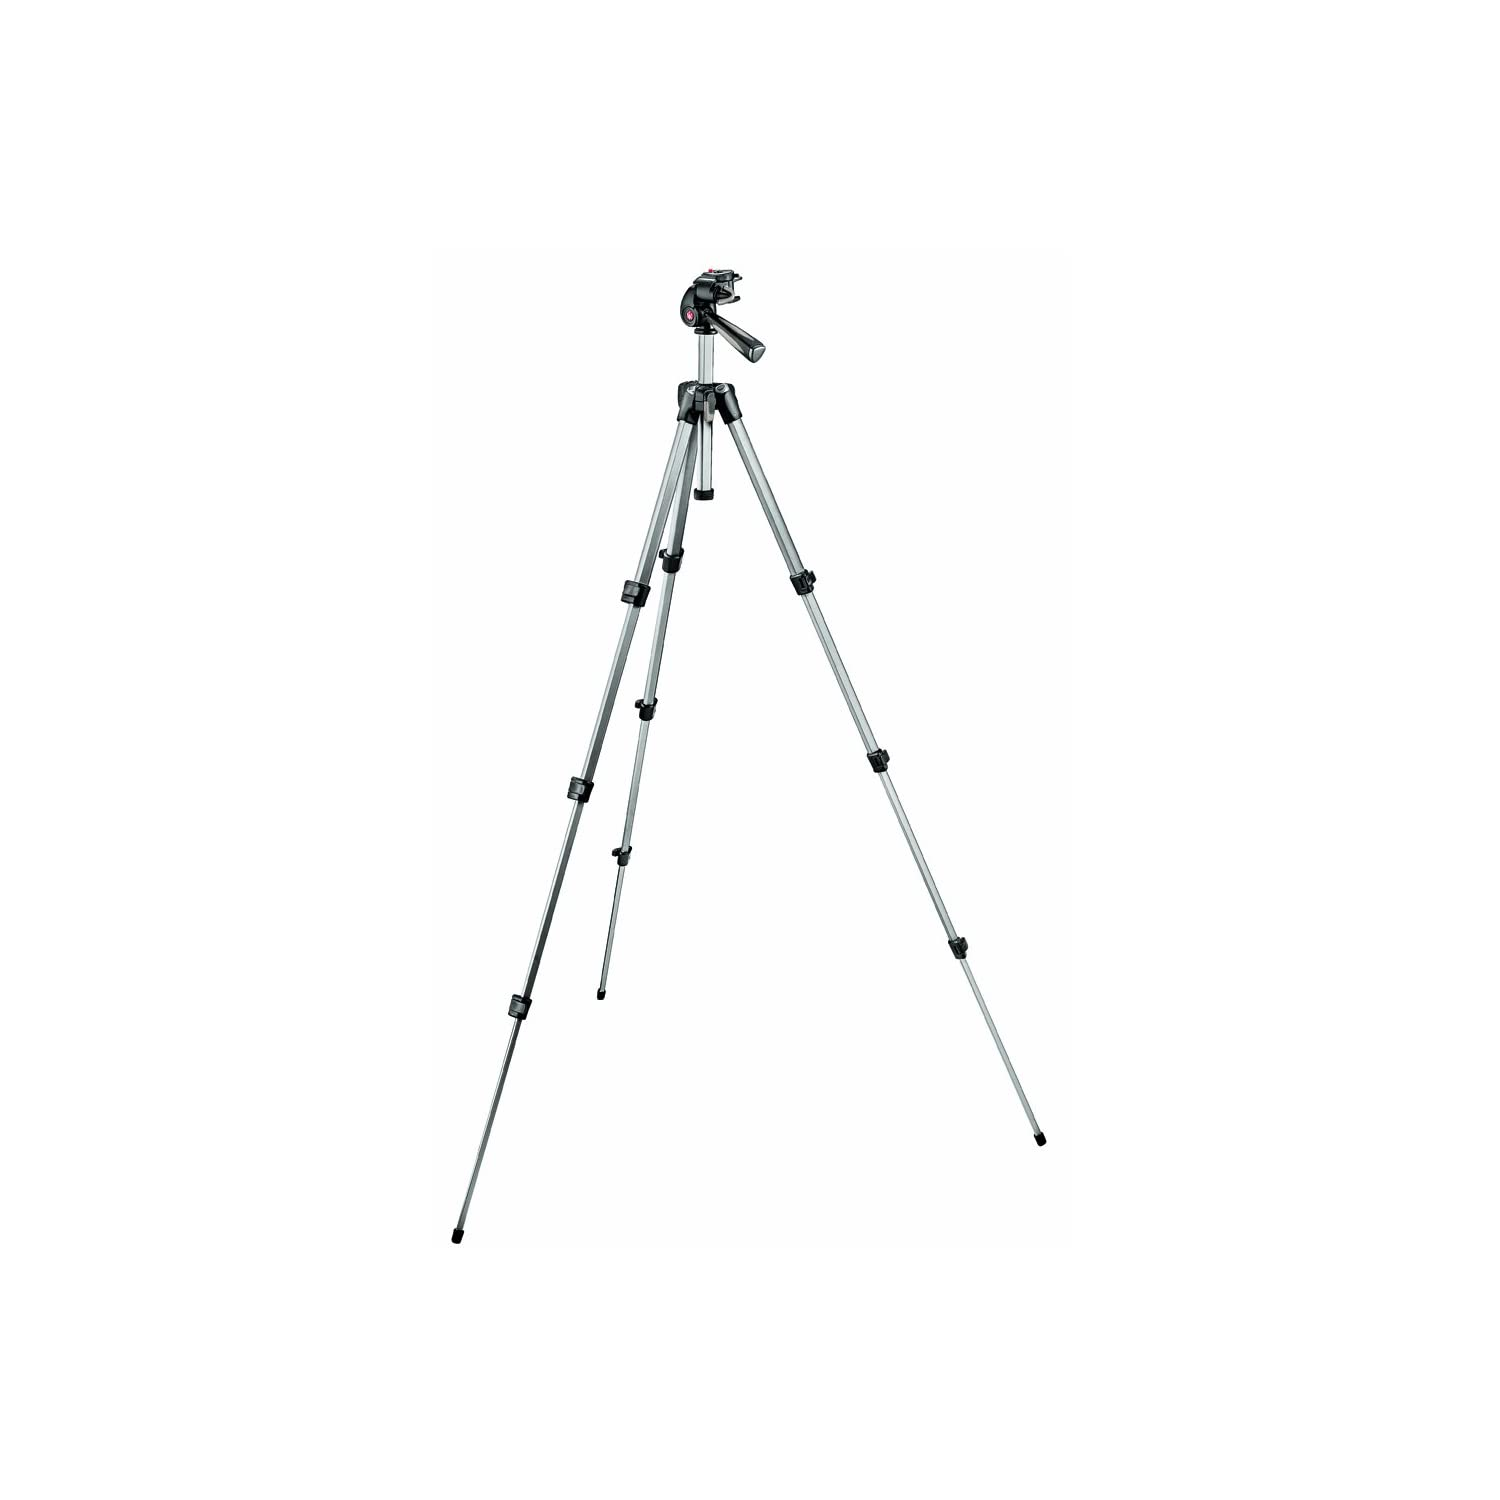 Manfrotto Stativ amazon